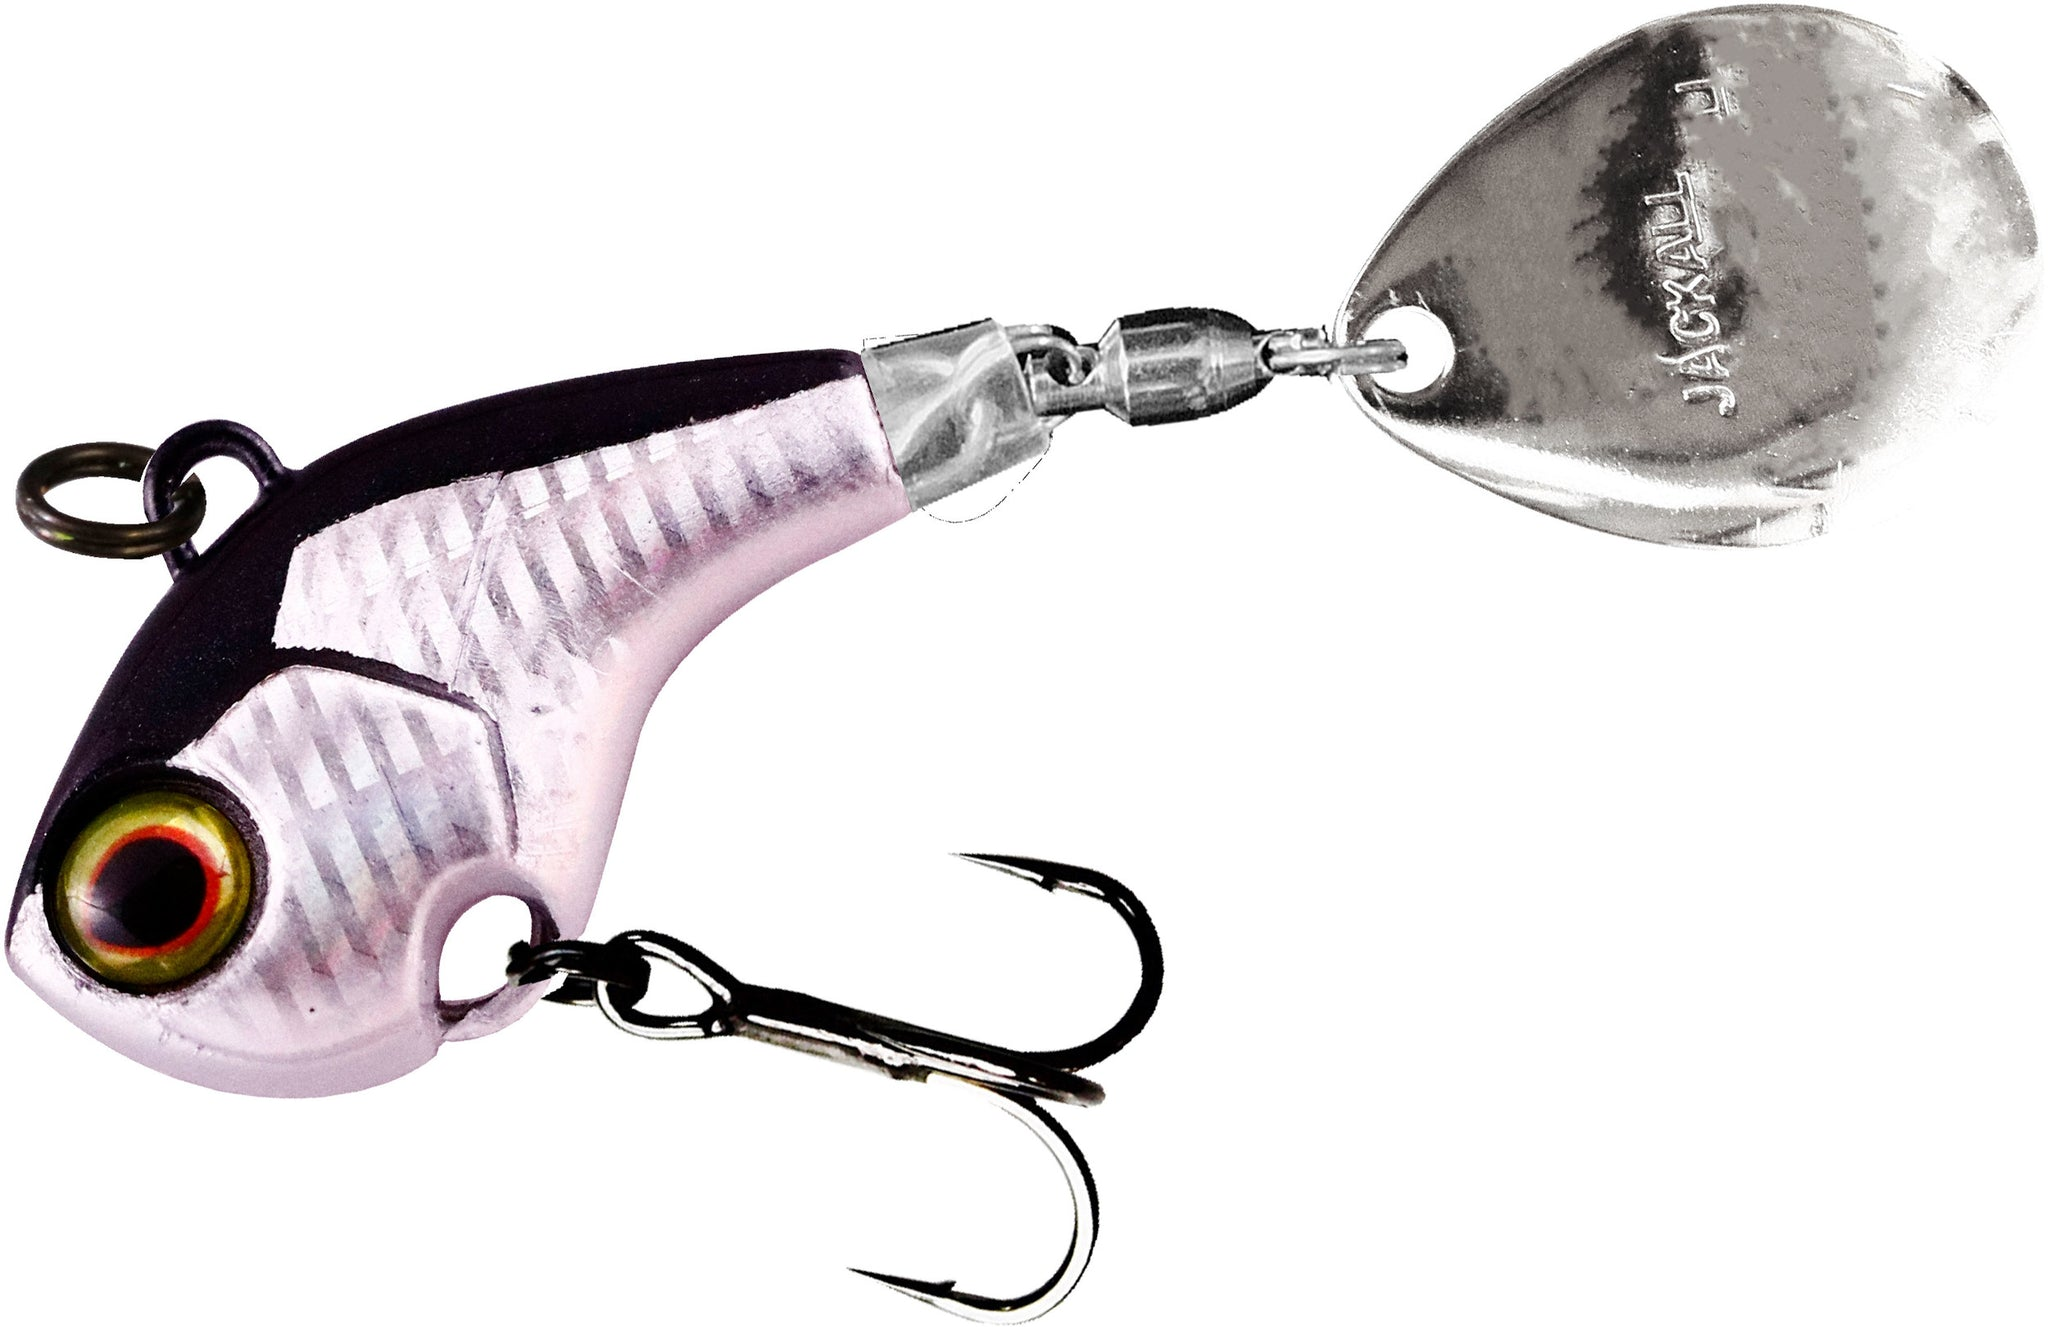 Jackall Deracoup 1//2 oz Spin Tail Sinking Lure HL Pink Gold 2748